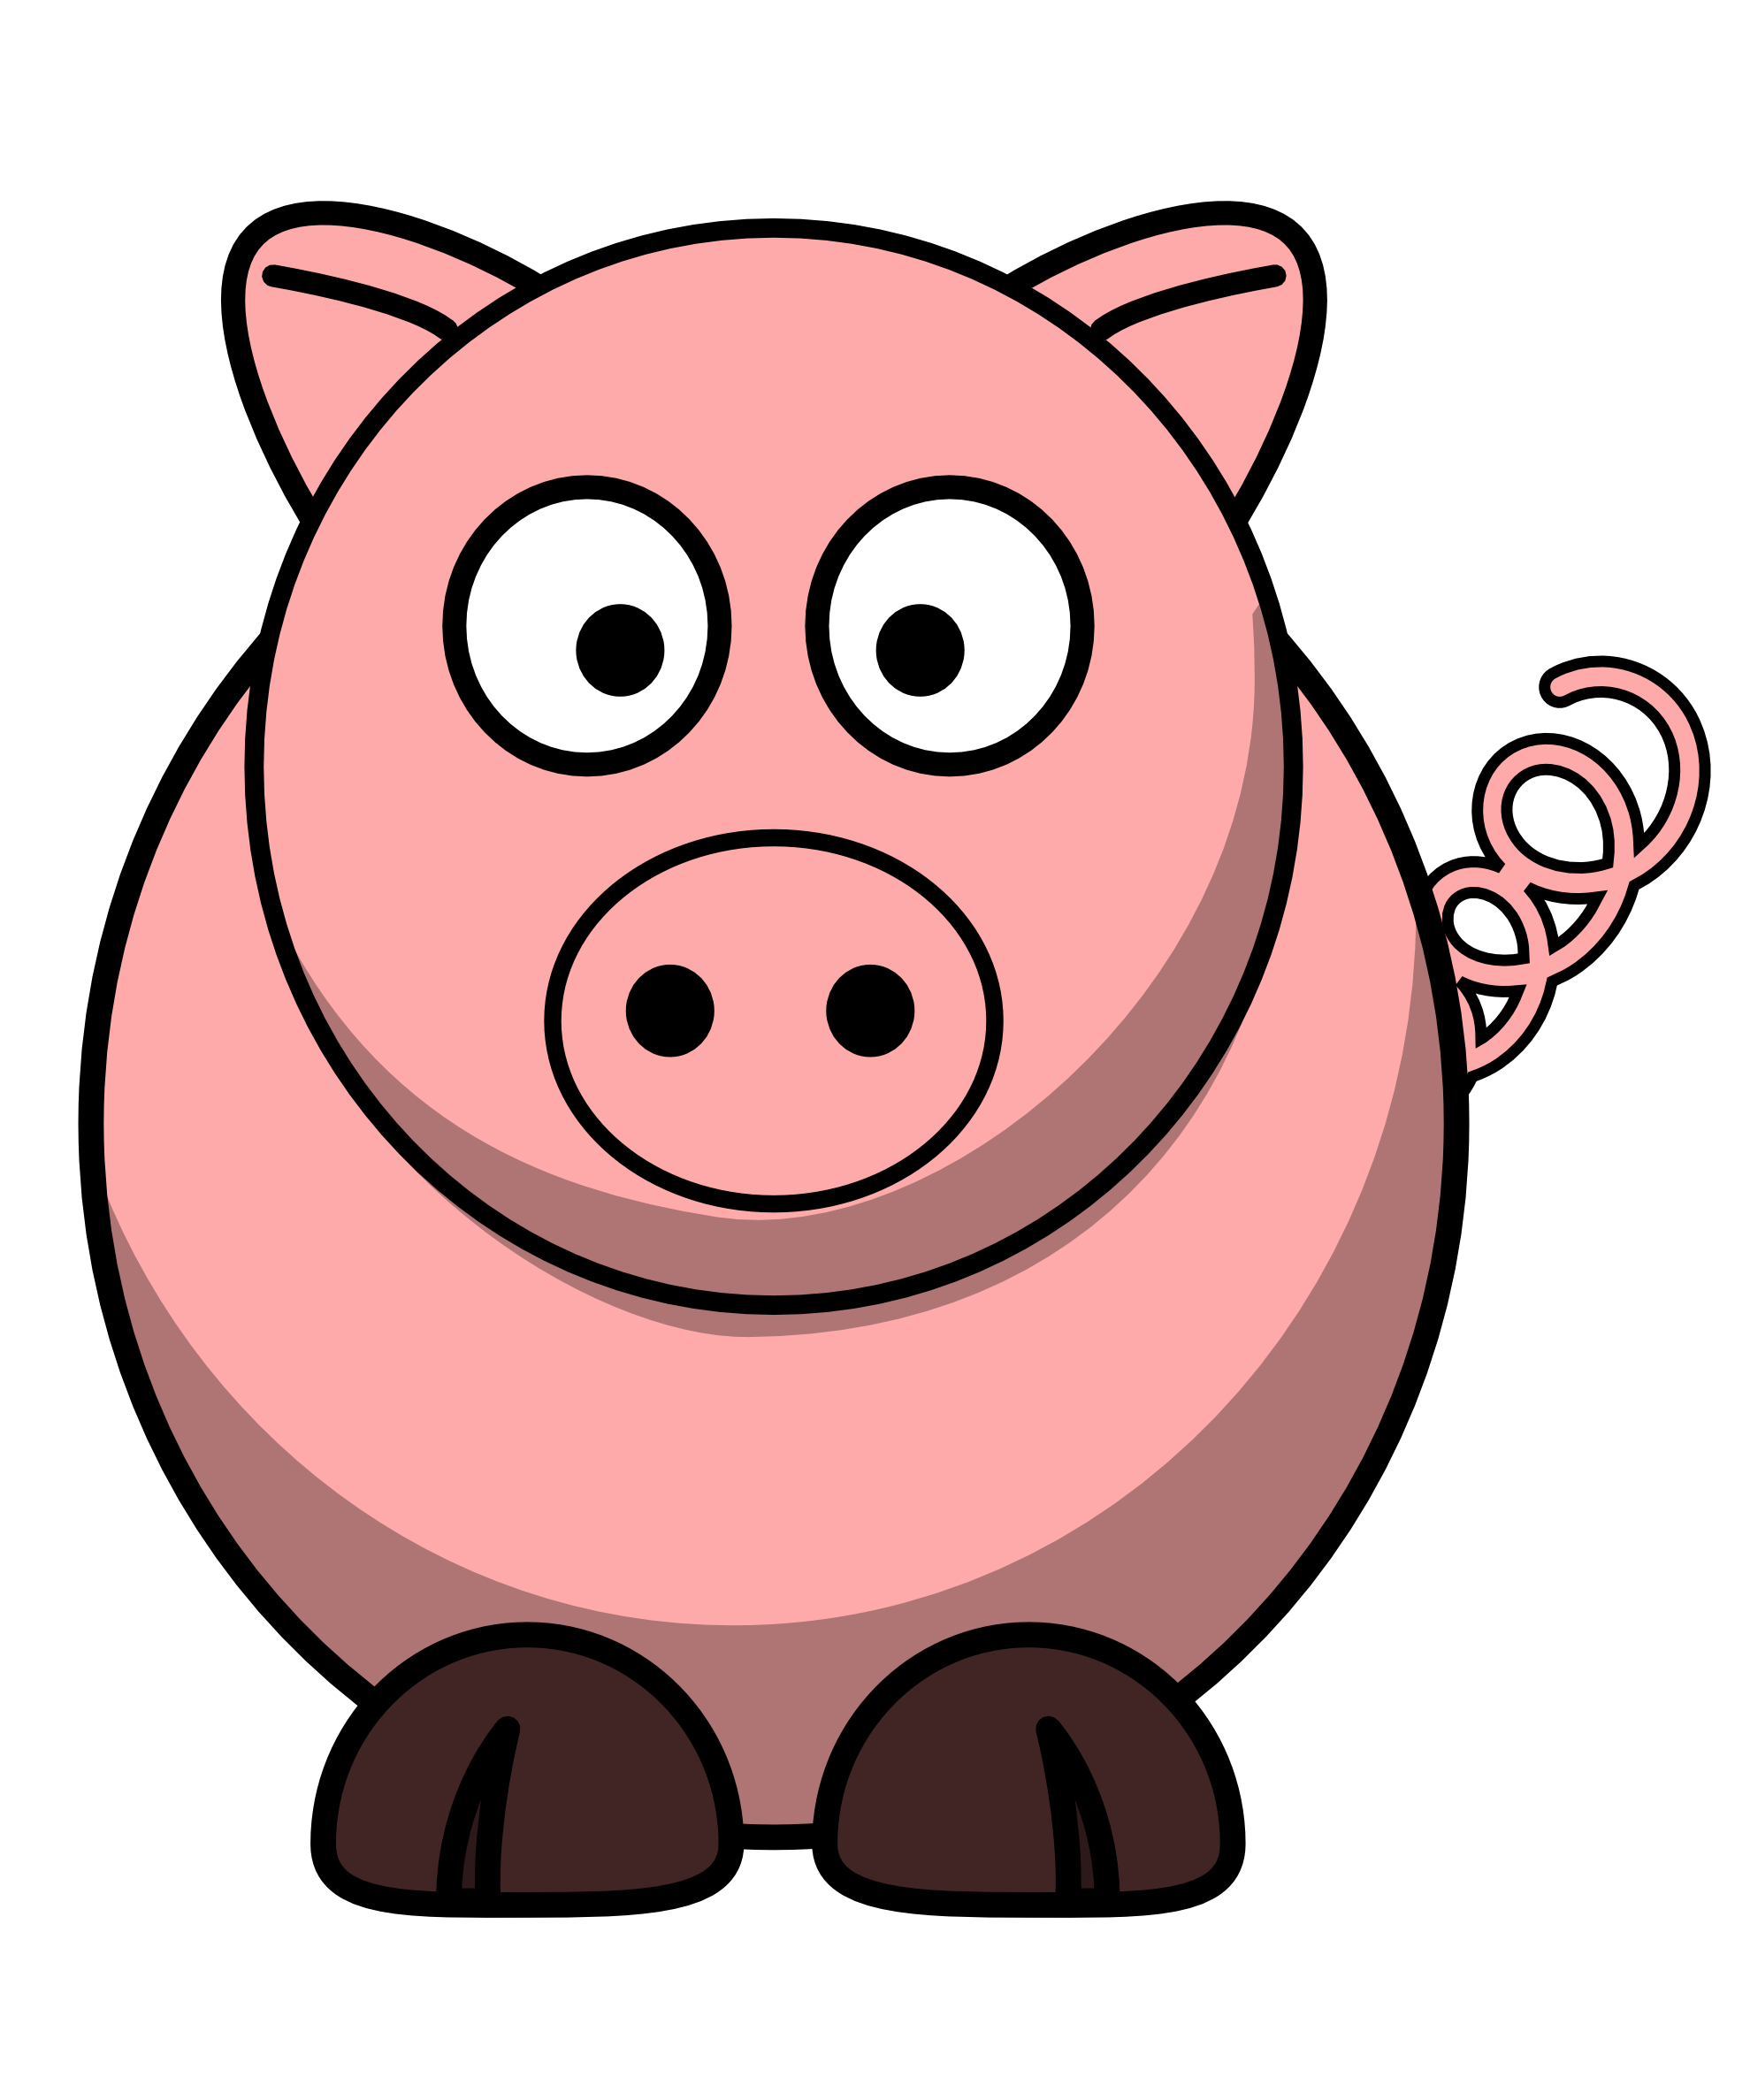 Pig svg #344, Download drawings